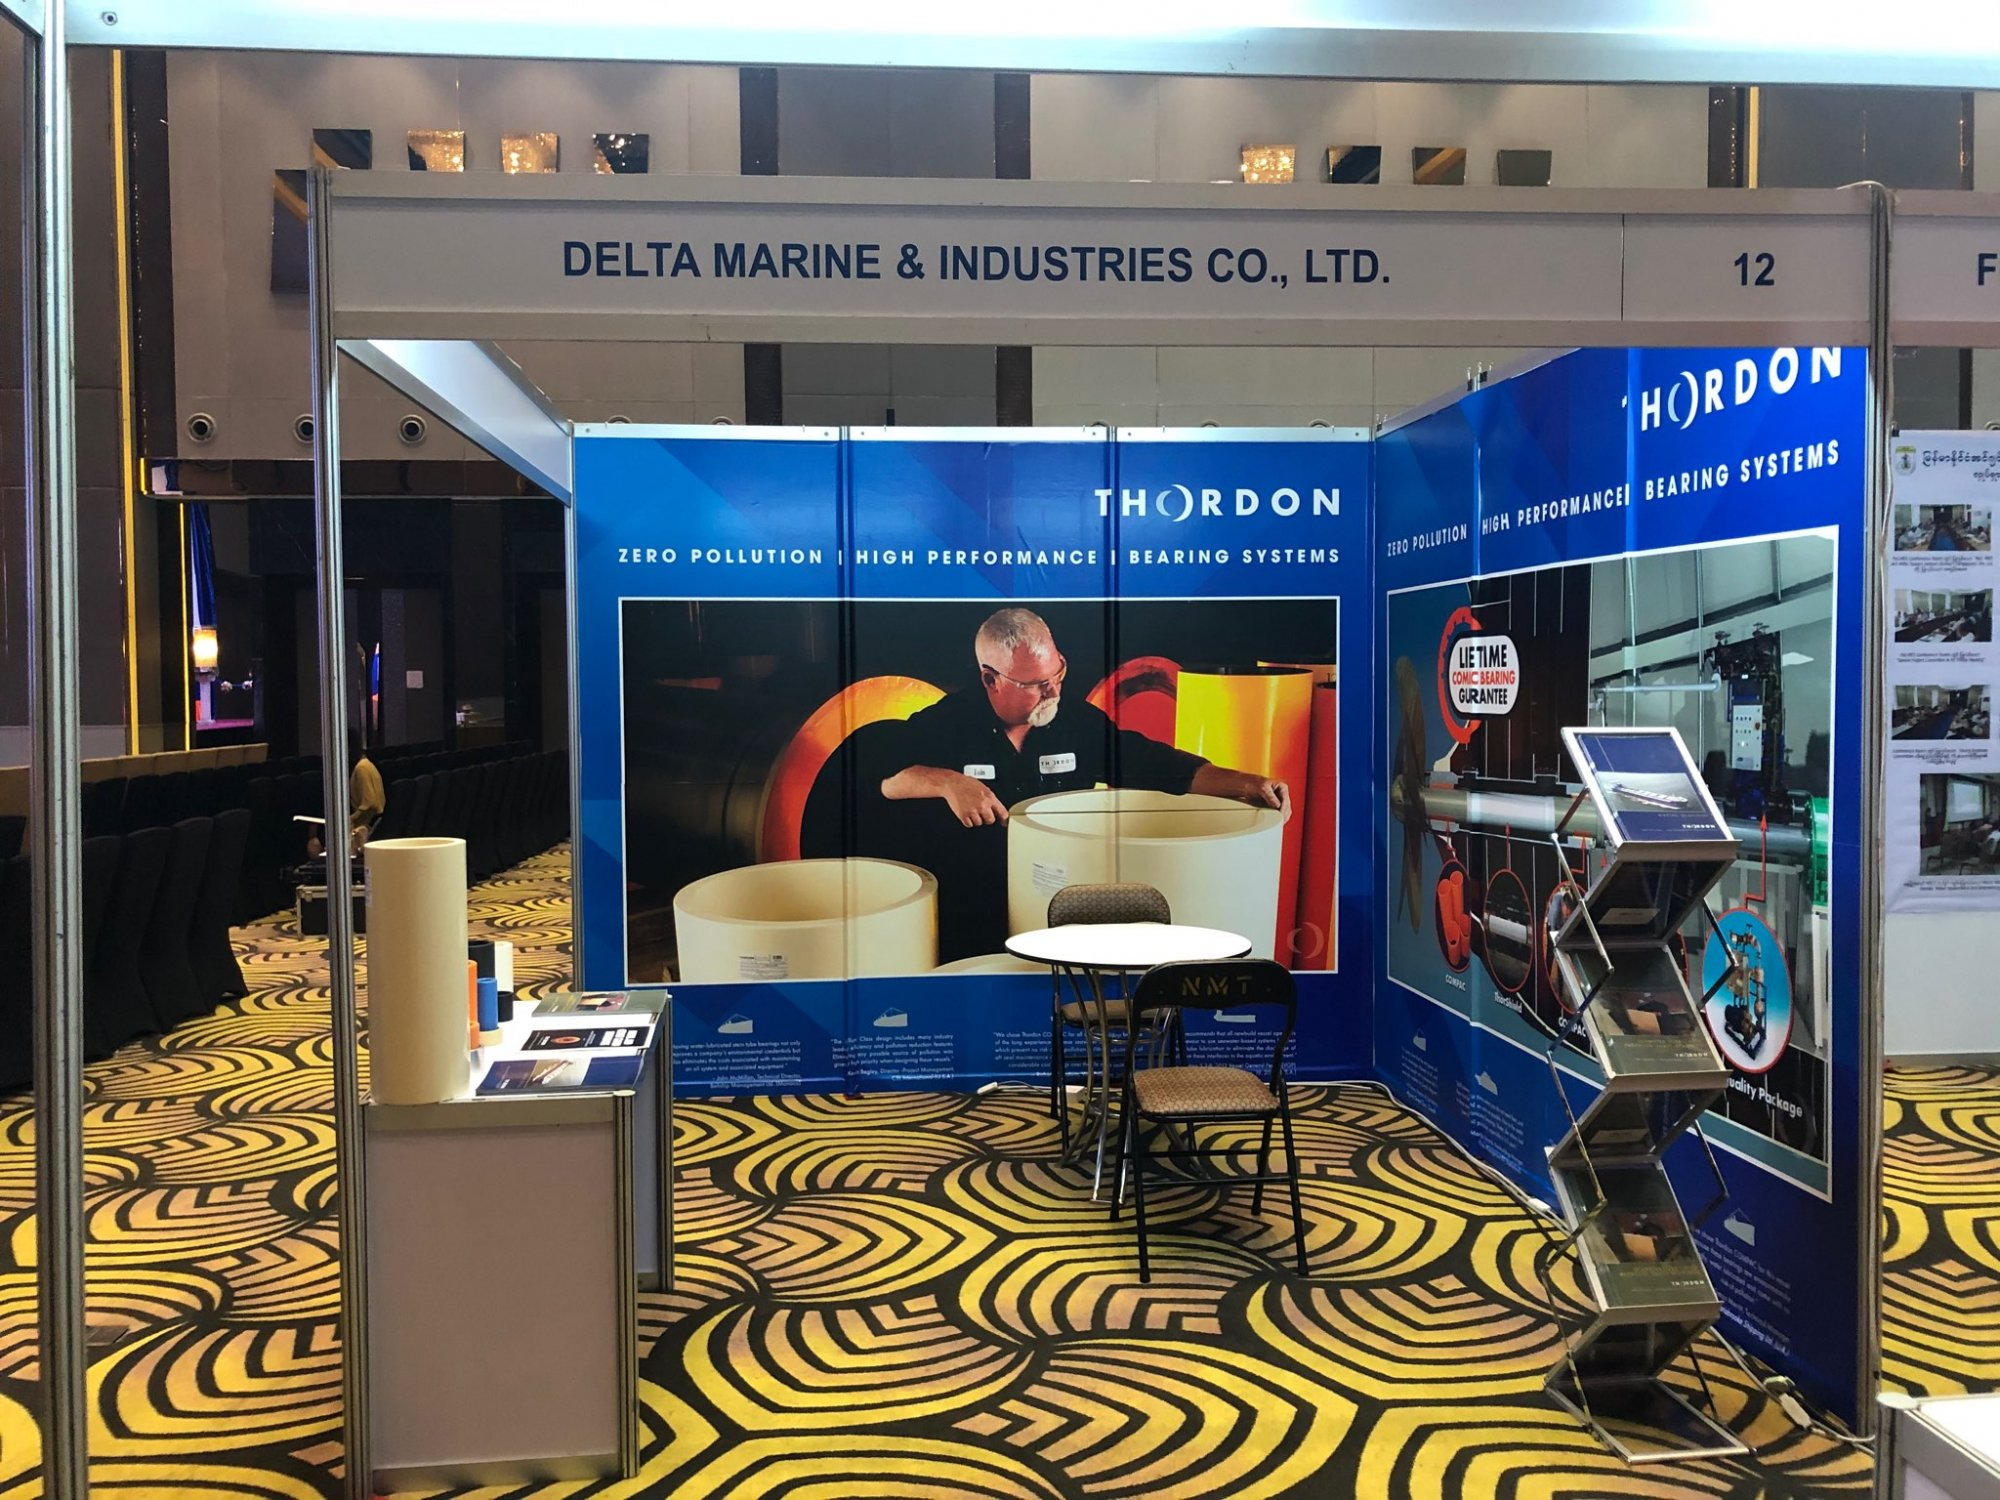 Delta Marin at MYANMEX 2019